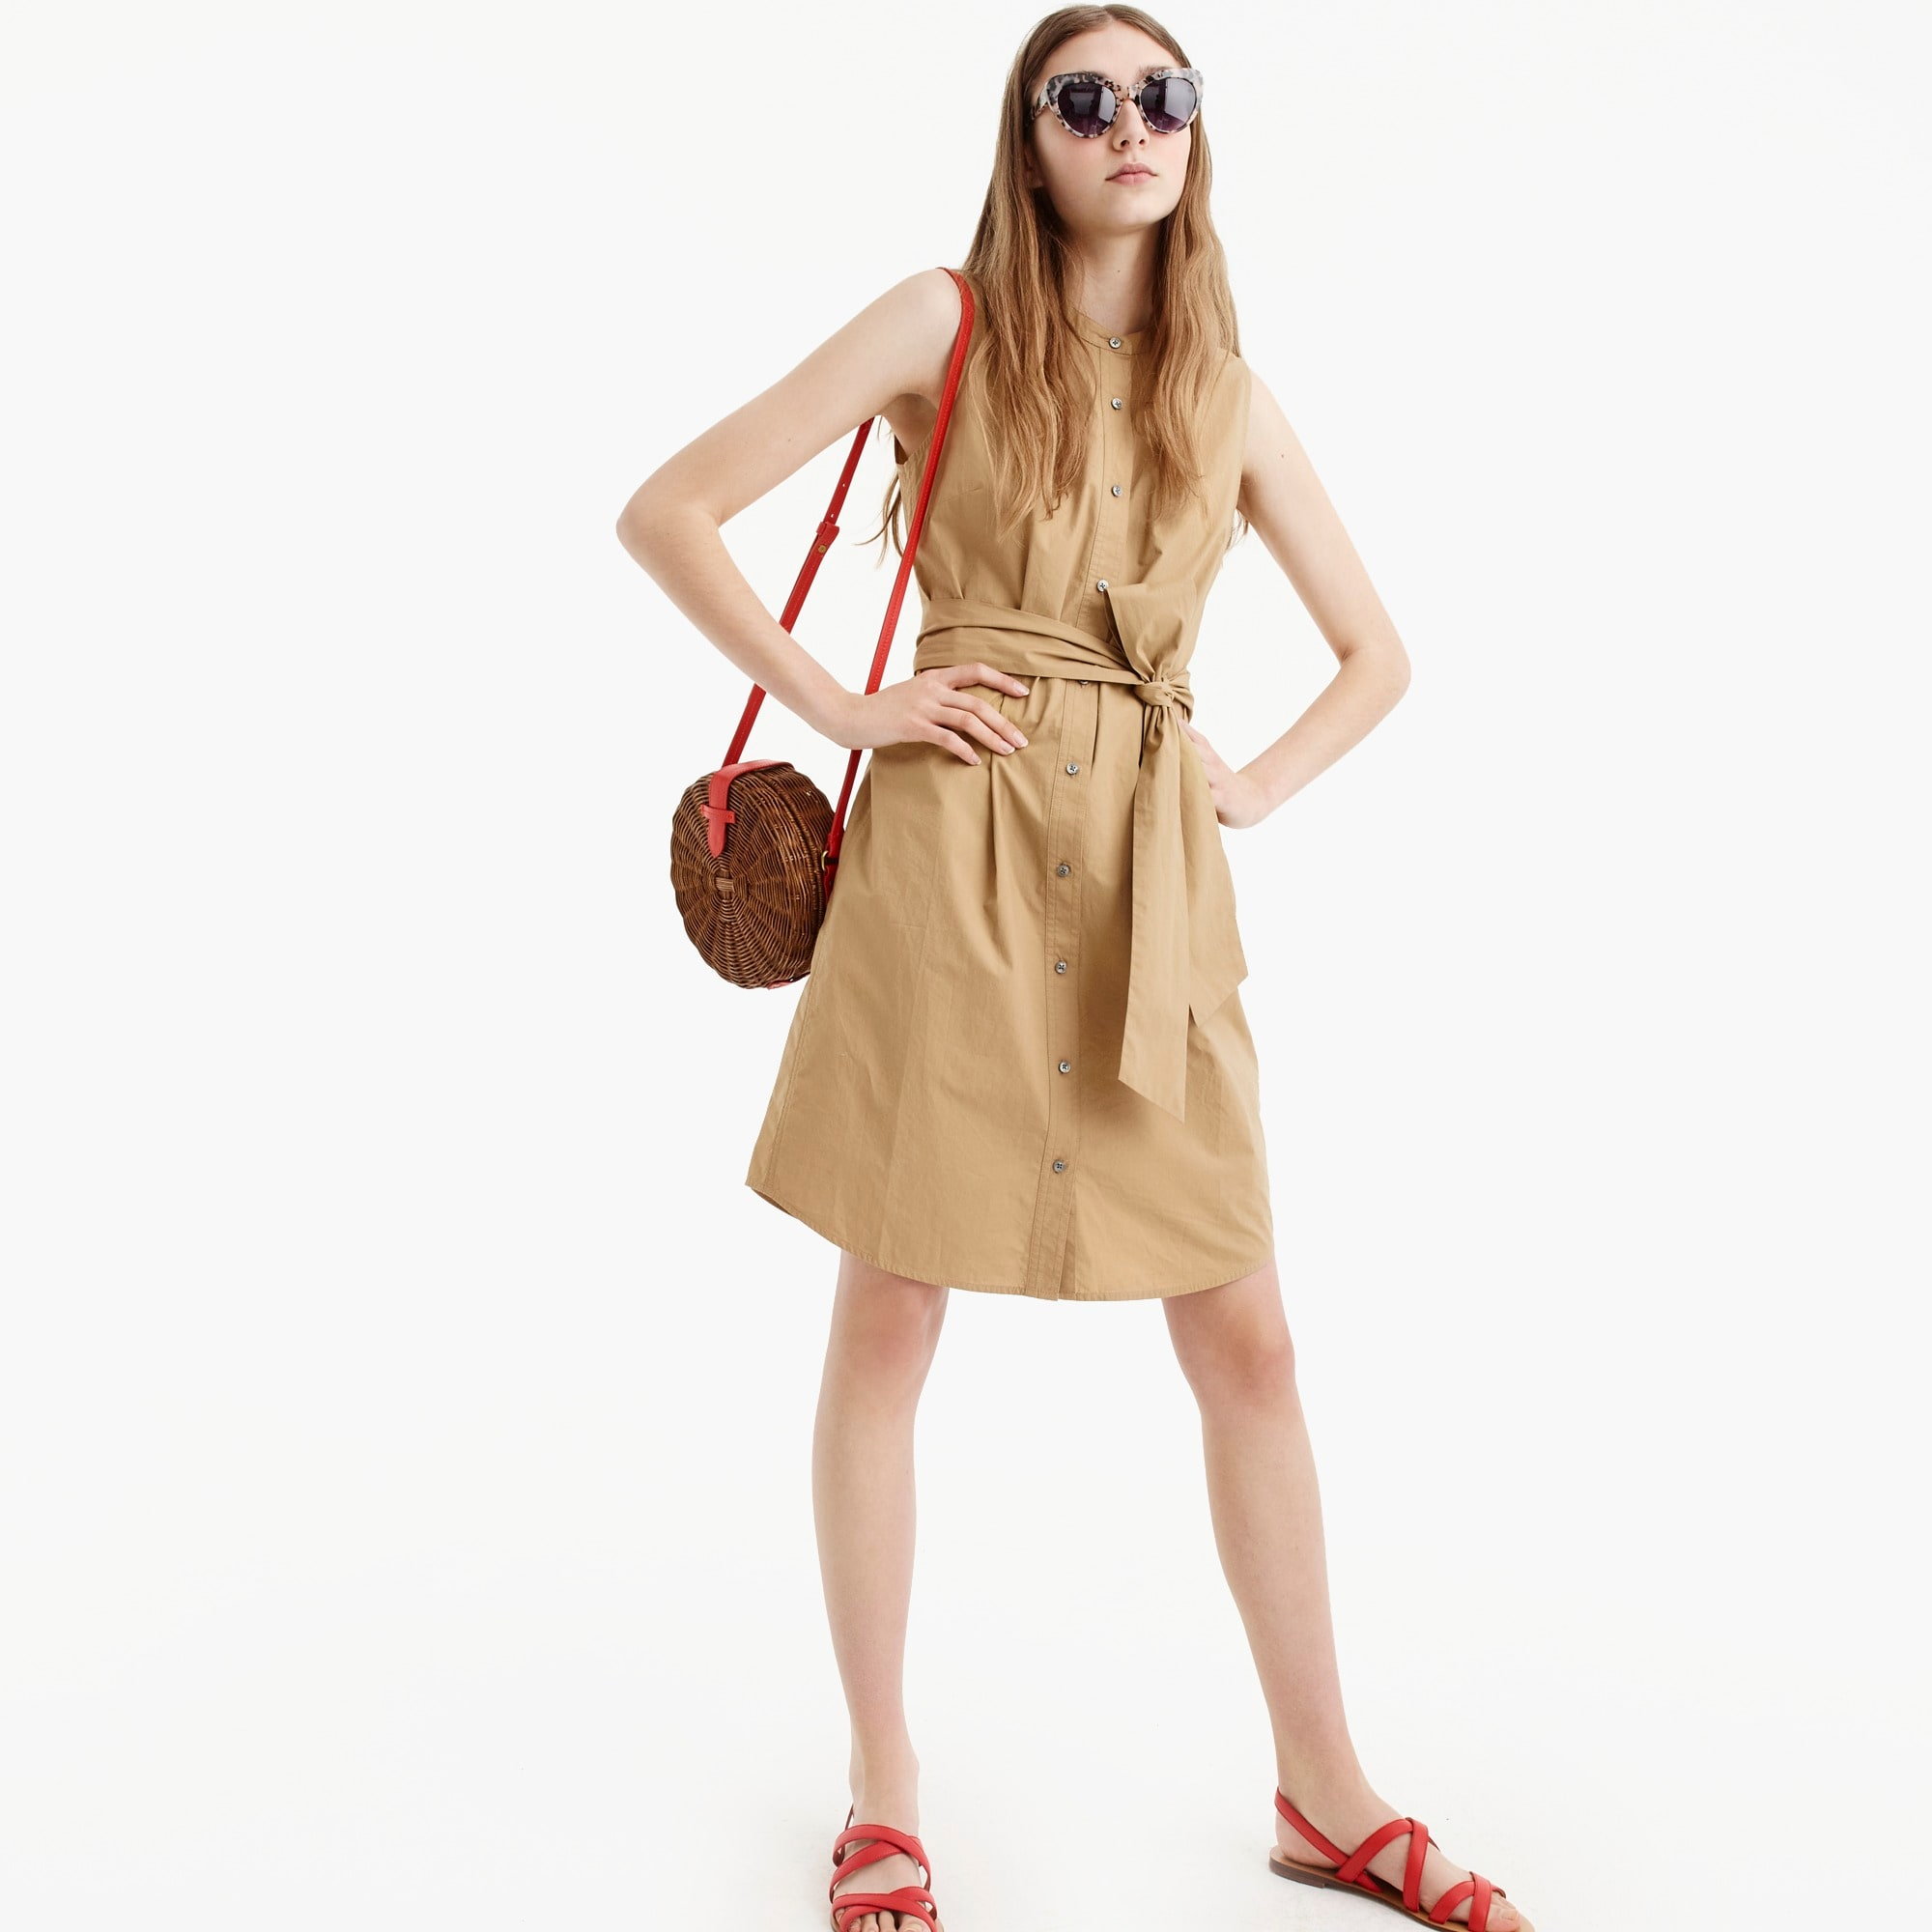 Sleeveless shirtdress in cotton poplin women dresses c